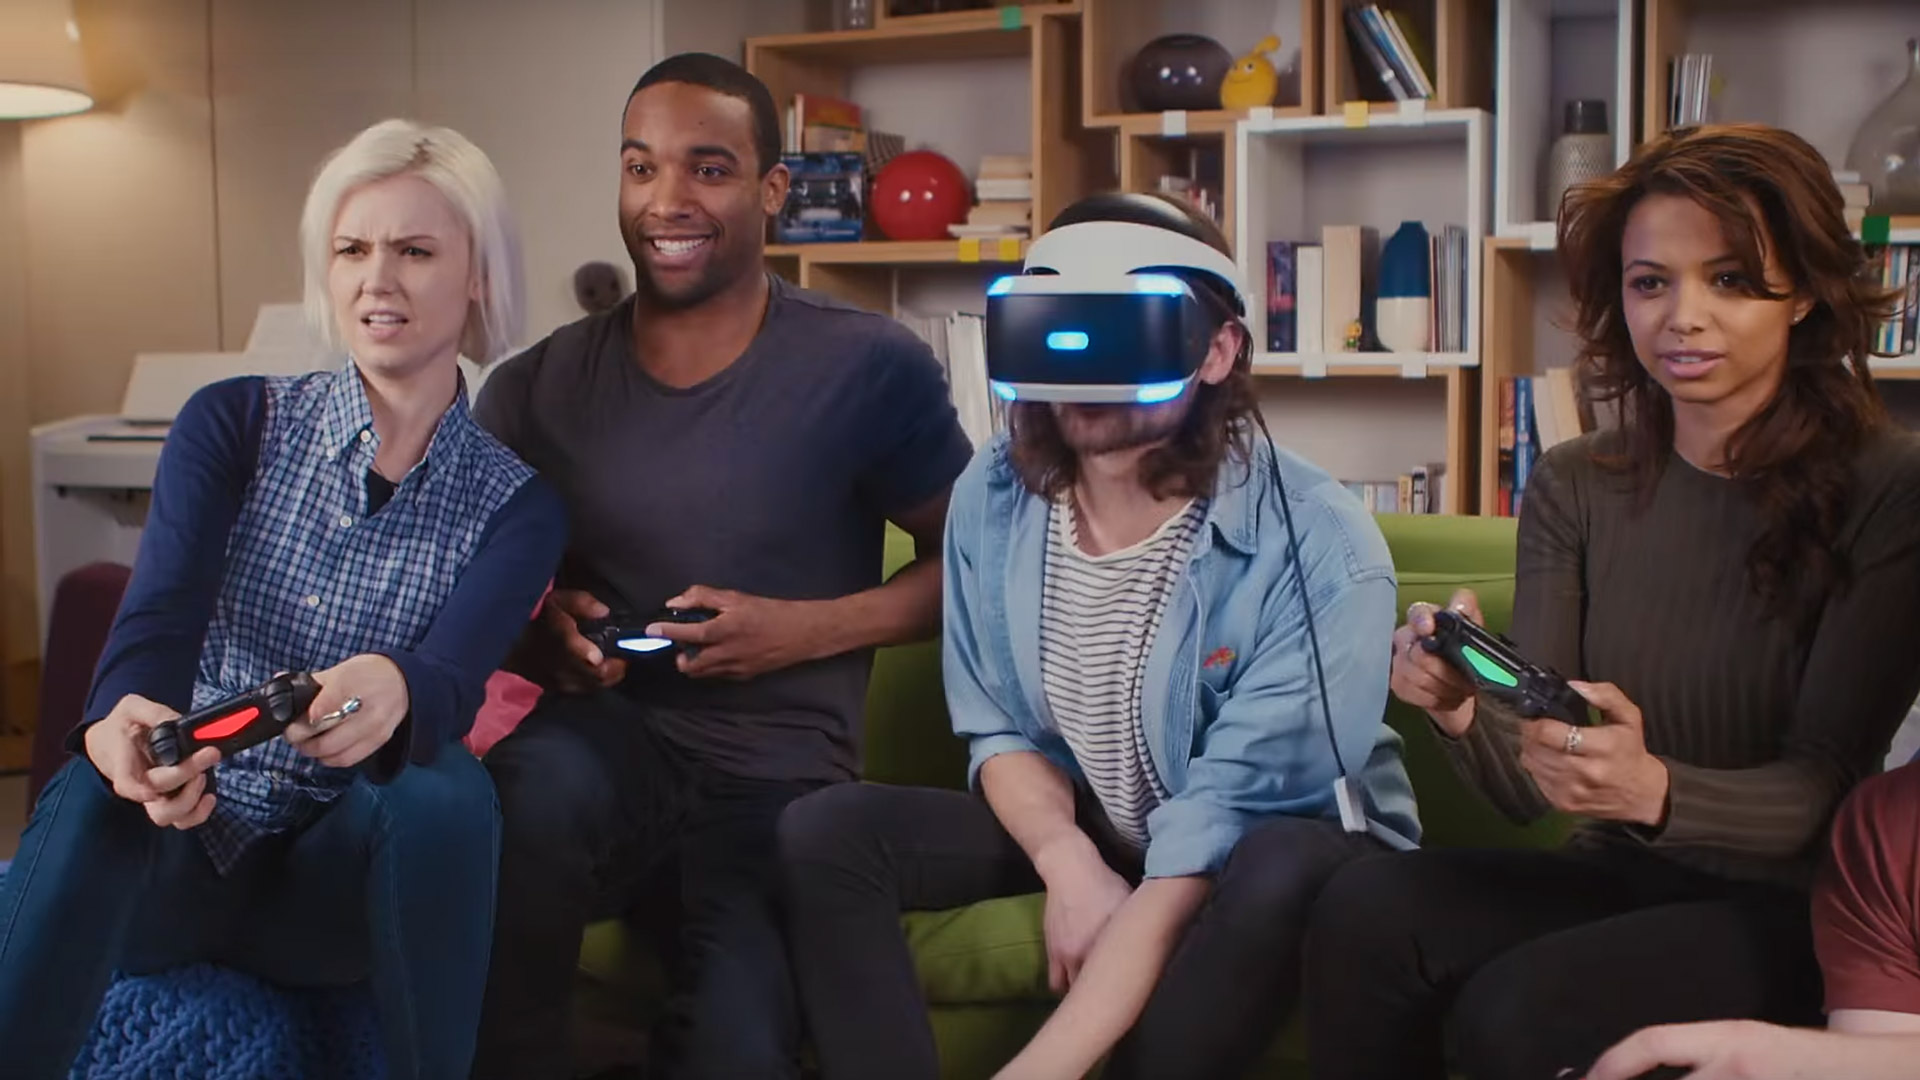 3 Great VR Party Games to Play With Friends and Family This